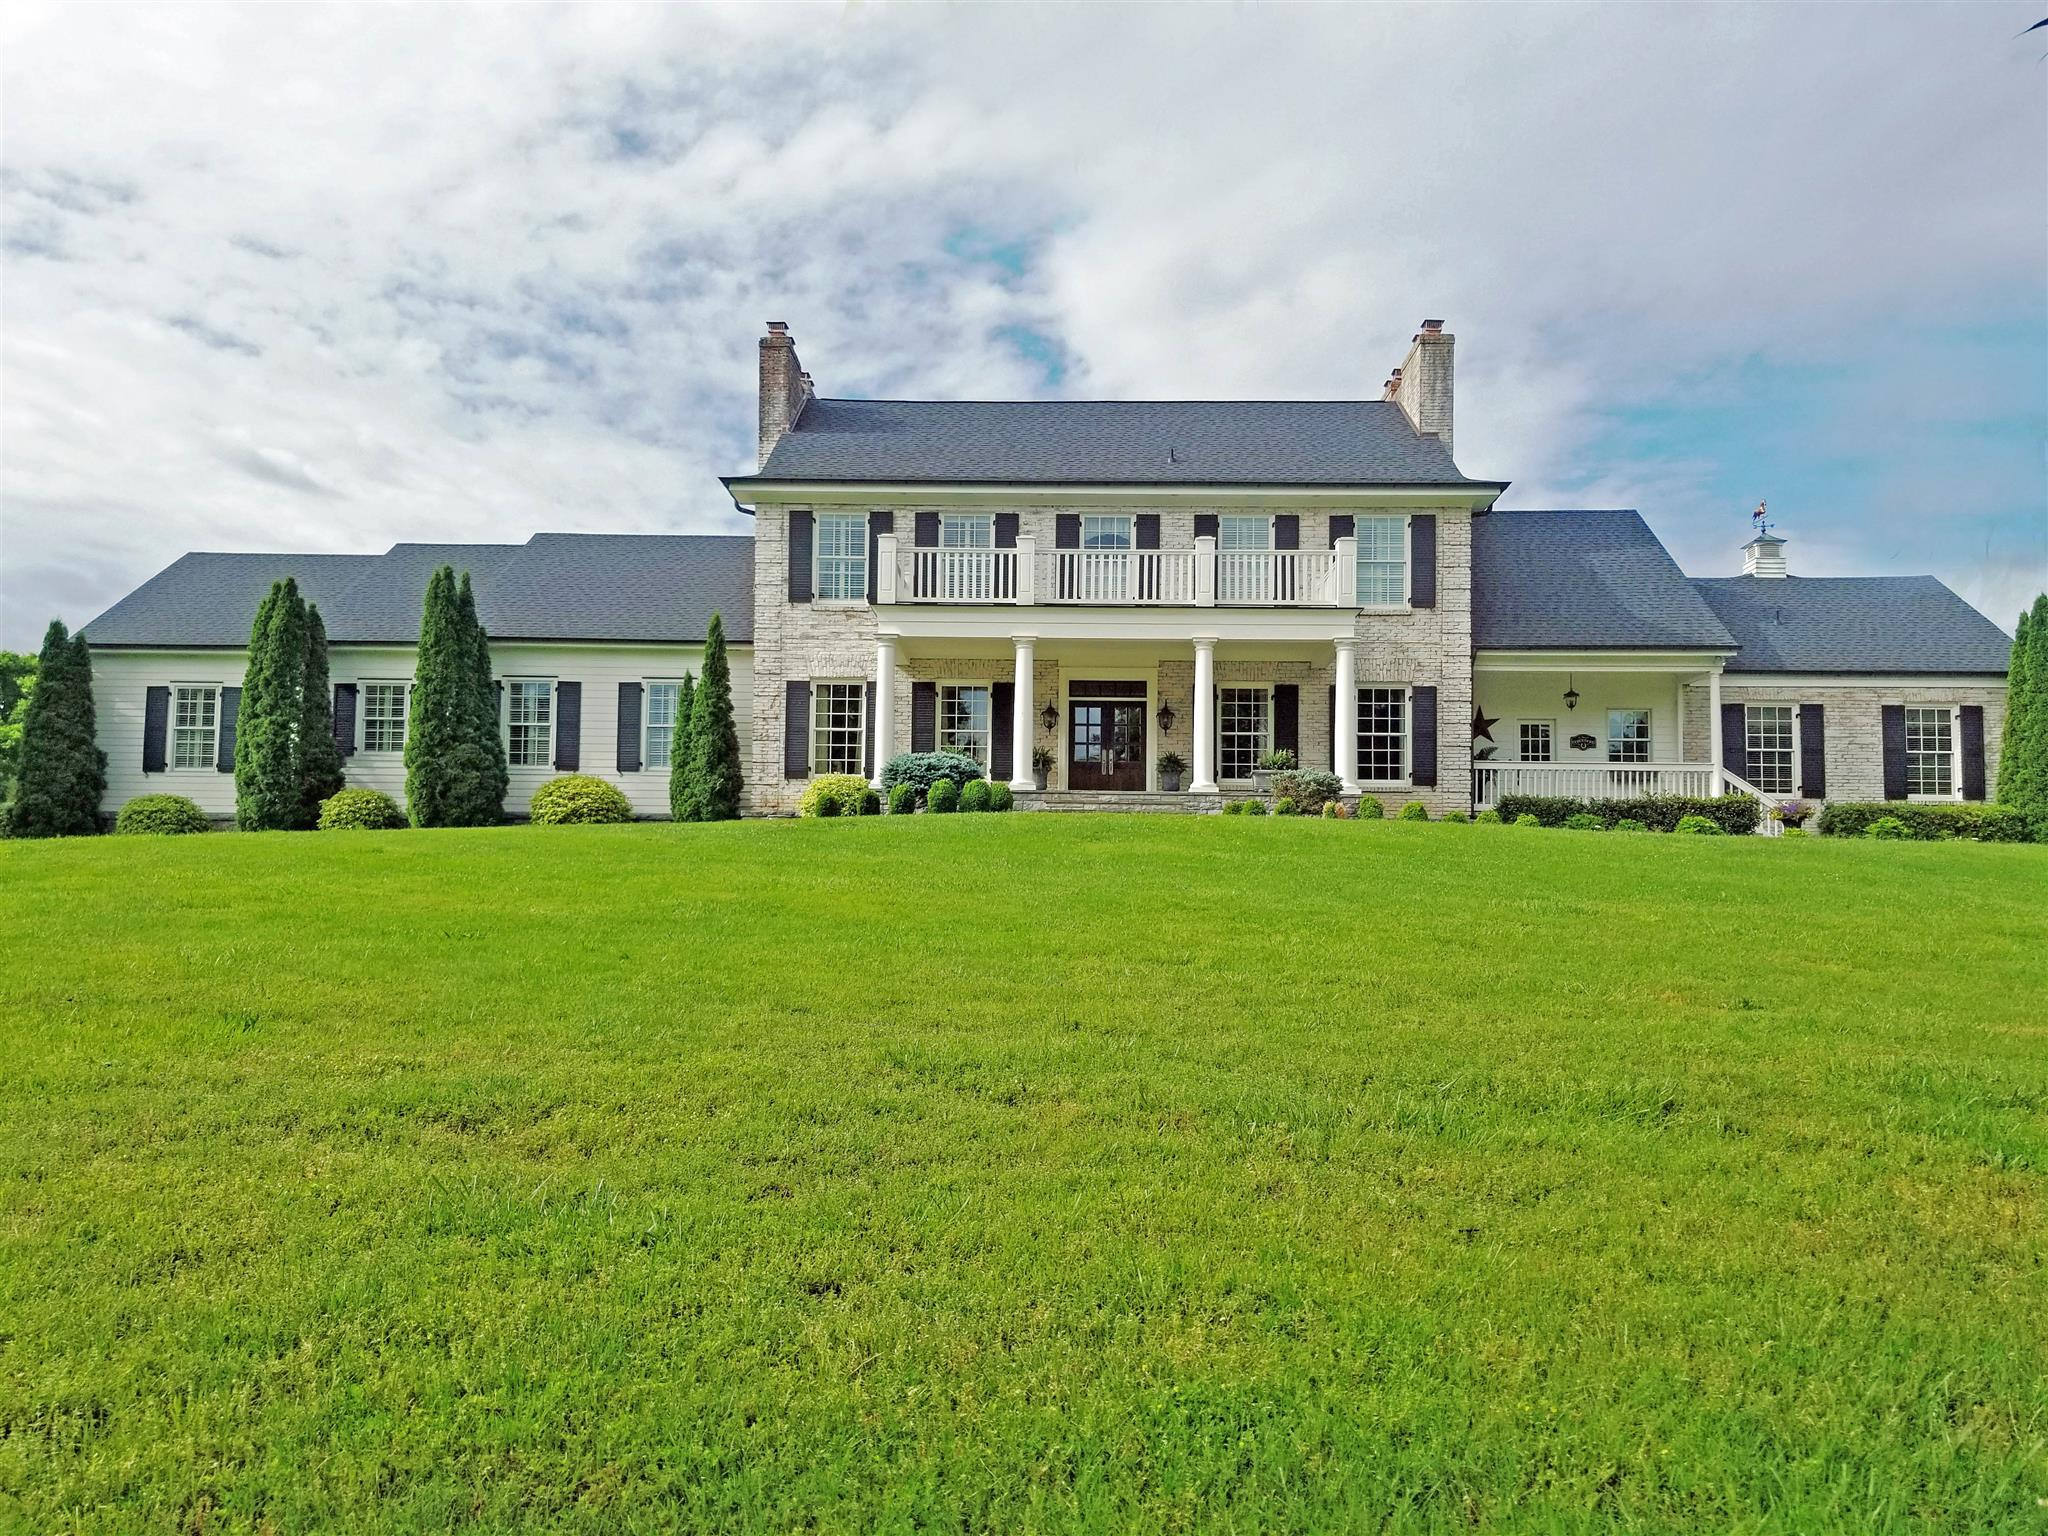 A dream come true...spectacular gated estate home, pool, pool house, barn and pond on approx 17 acres off historic Old Smyrna Rd in the heart of Brentwood! This home is picture perfect and ready to move in...don't miss this opportunity!